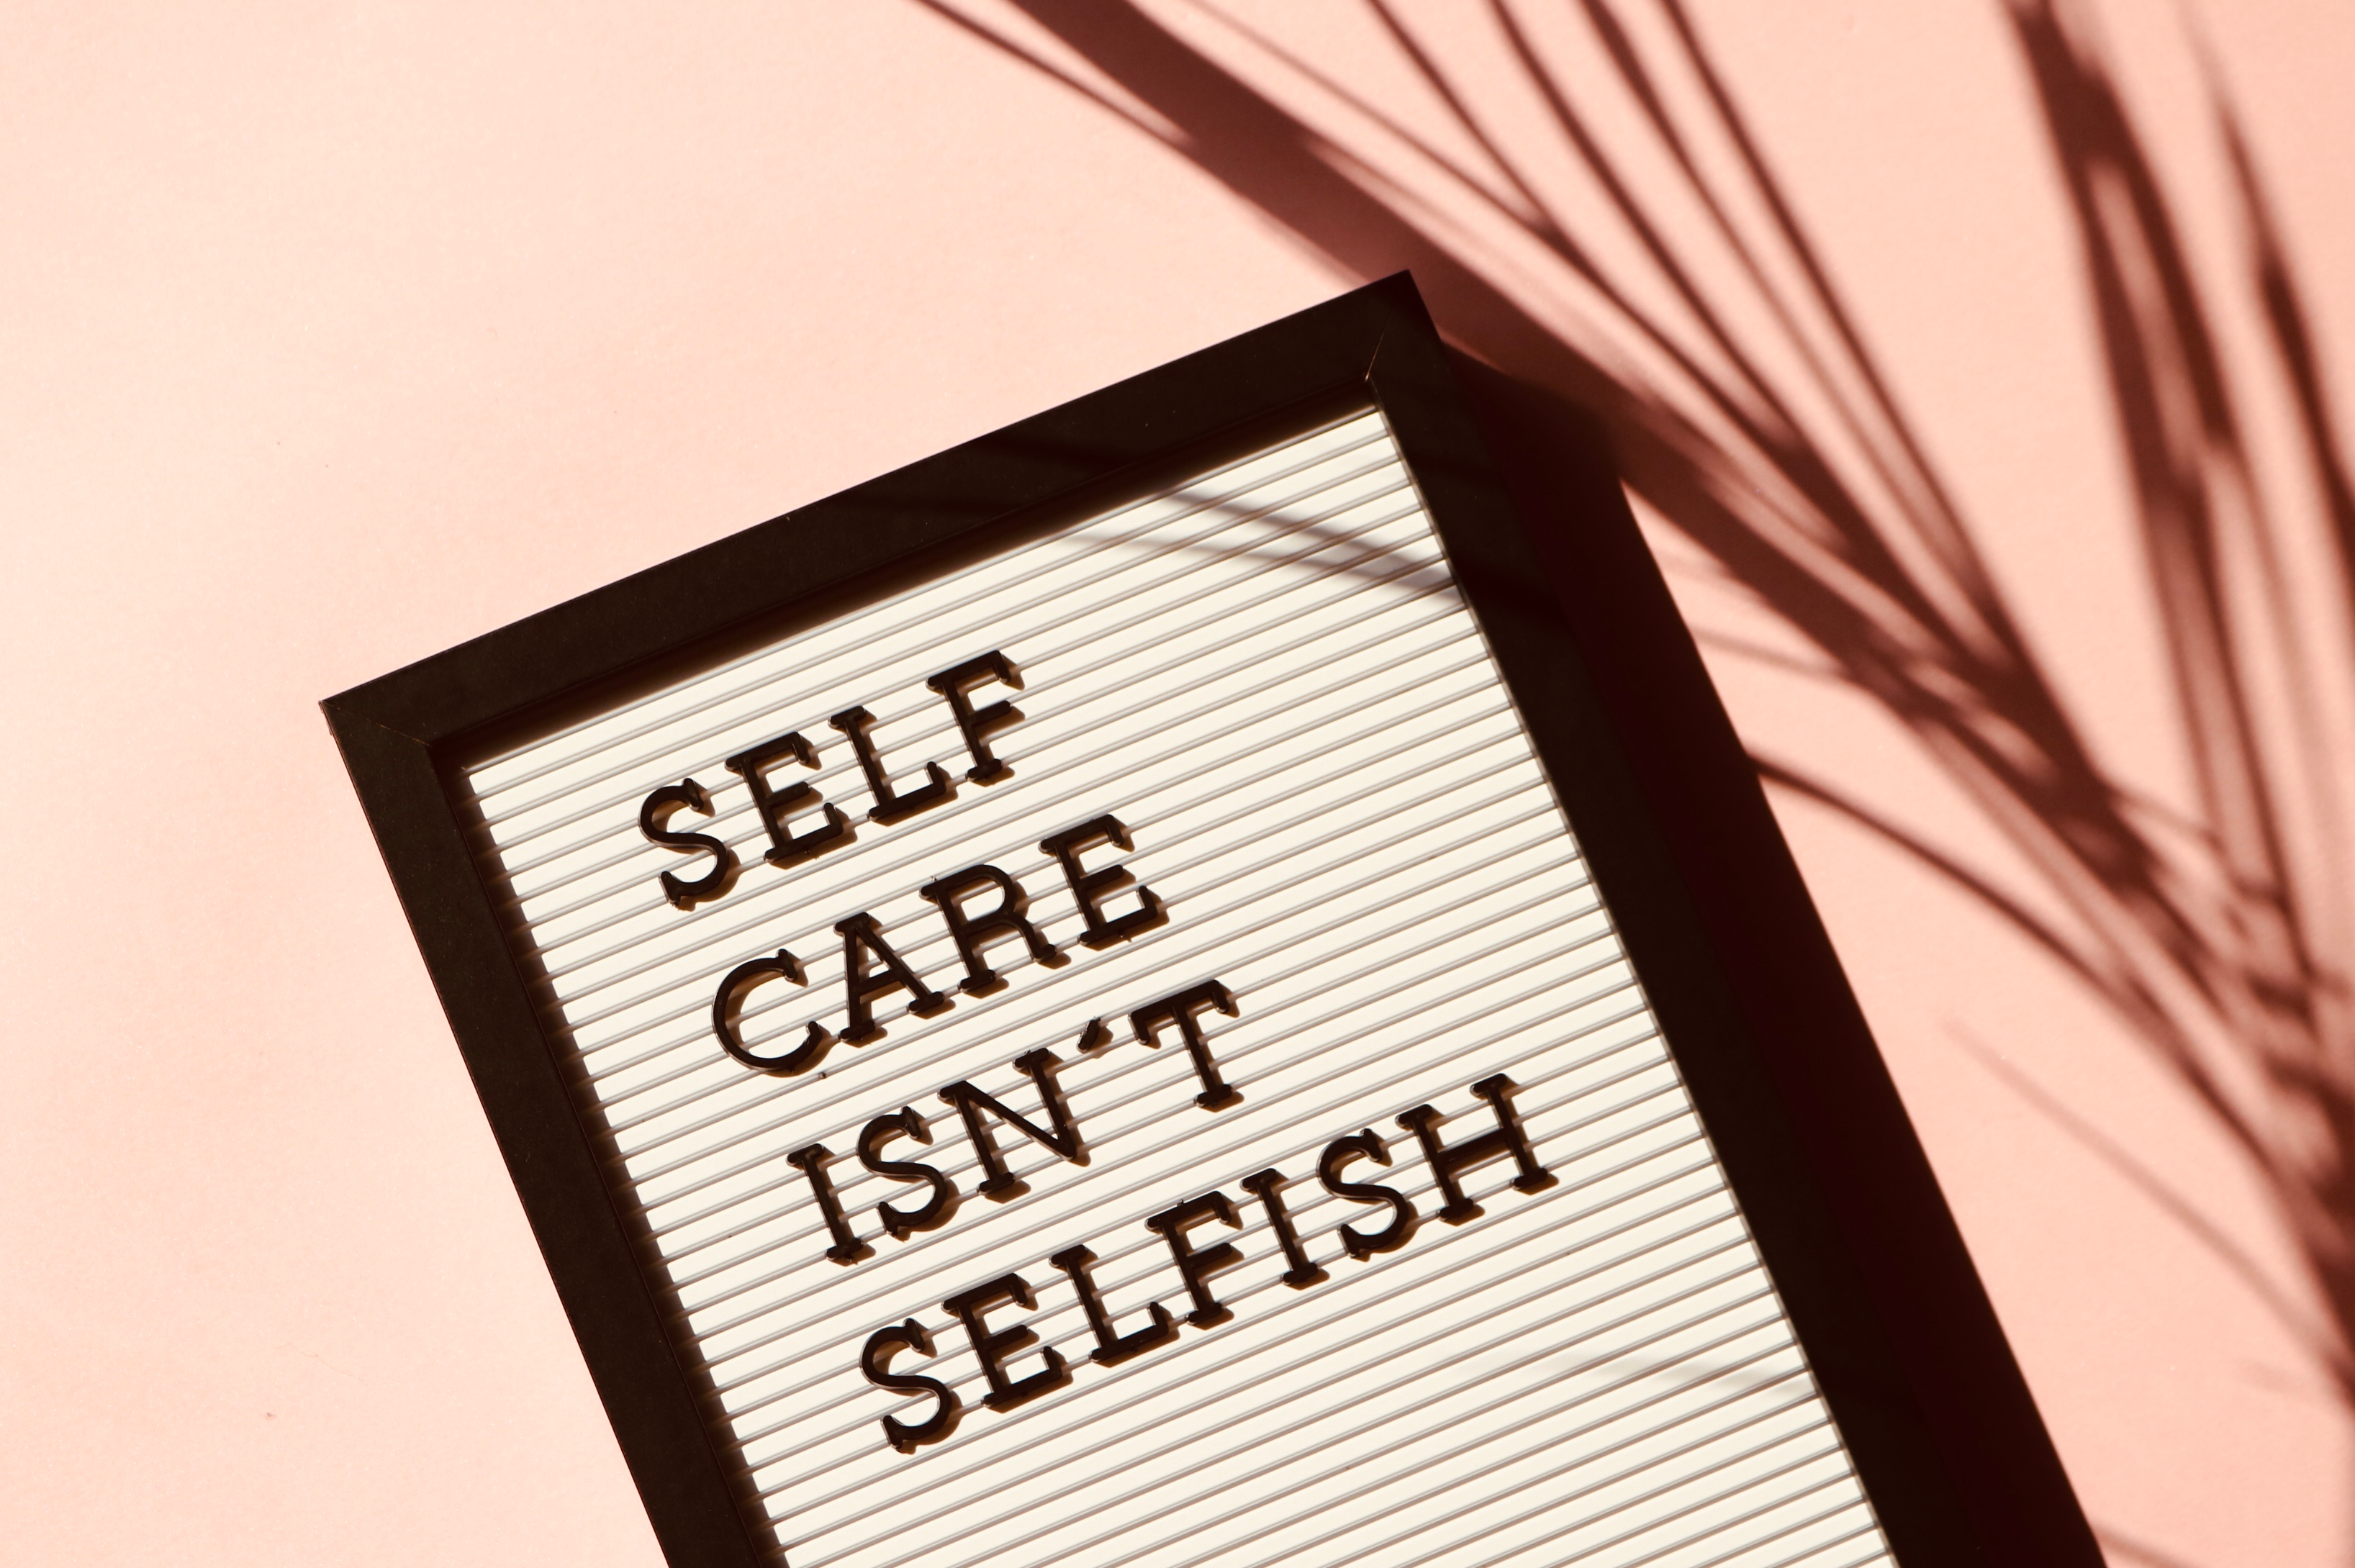 self-care as a topic for women's group online group